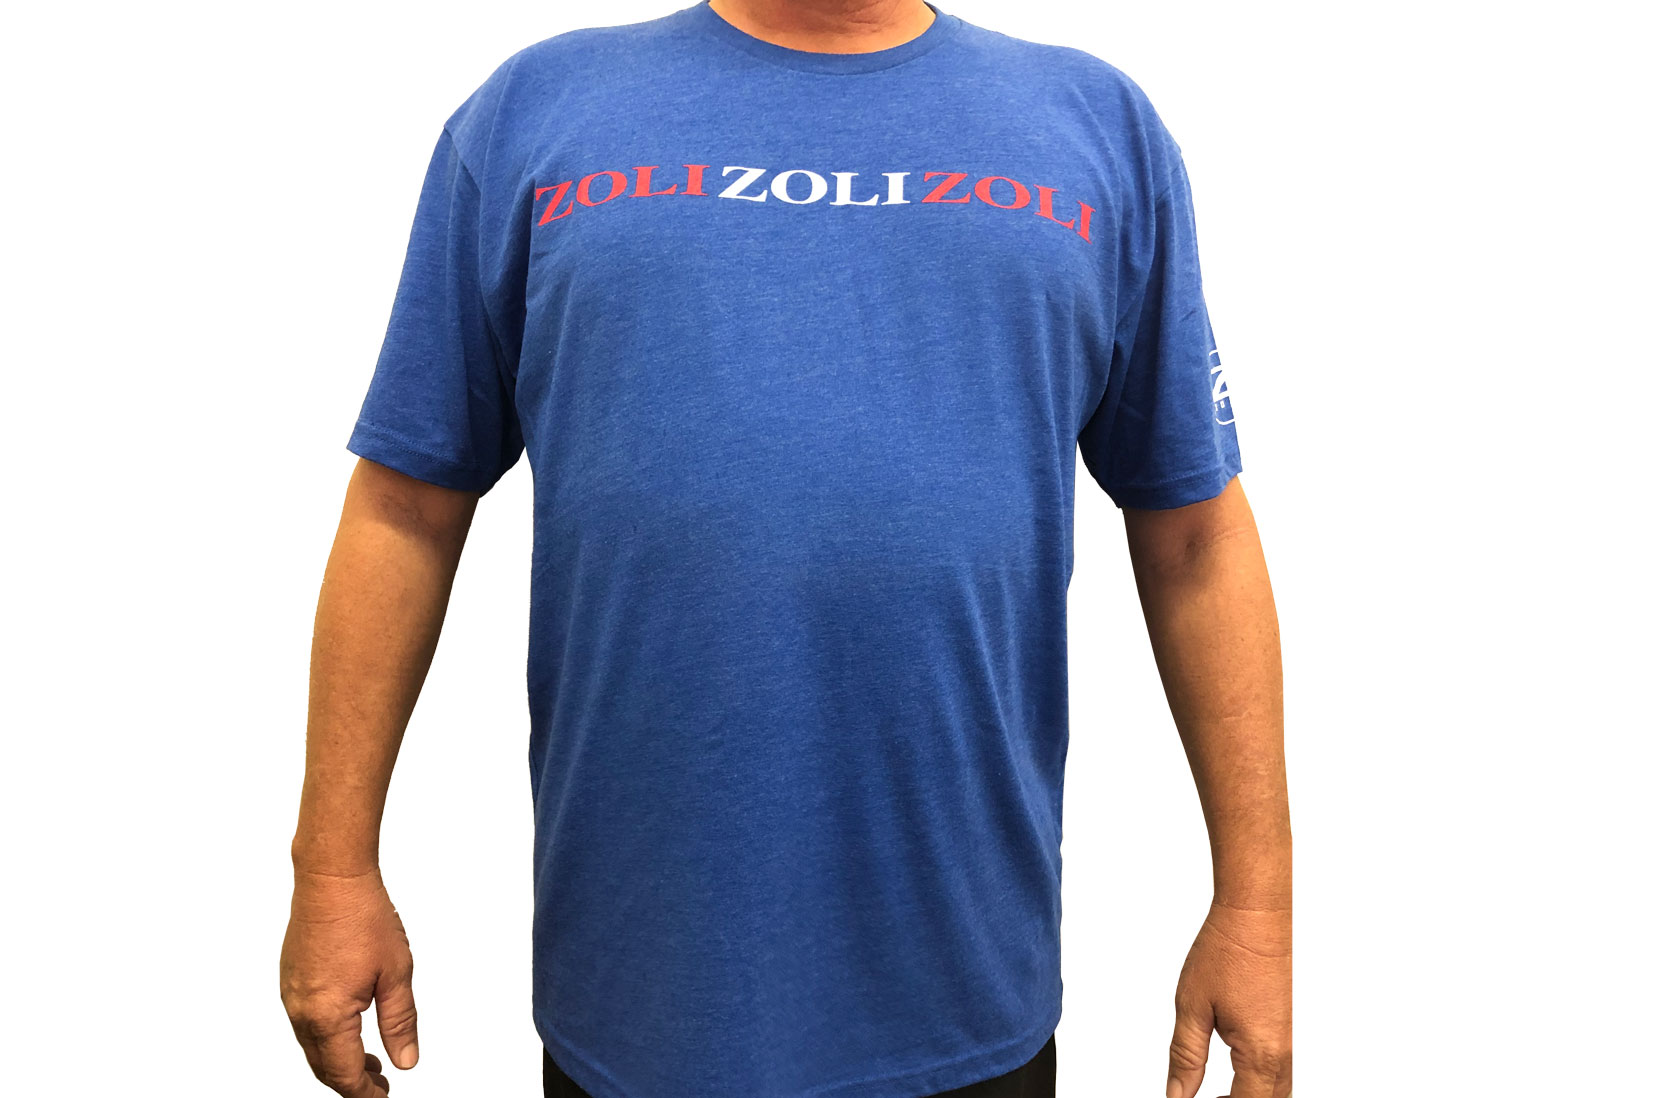 Zoli Zoli Zoli Blue Cotton Shirt